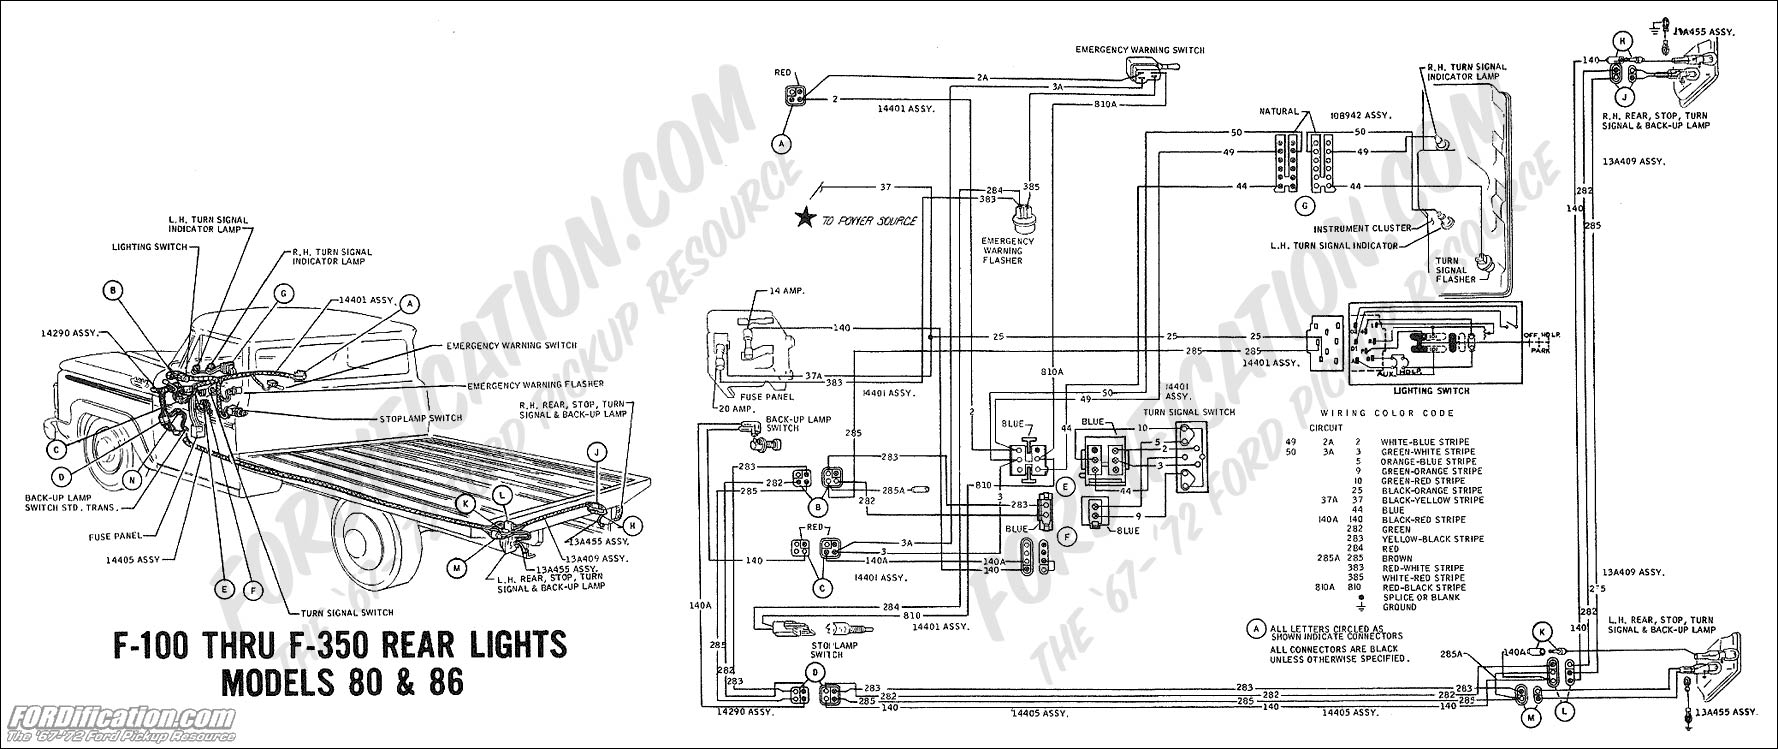 ford truck technical drawings and schematics section h wiring 7.3 idi glow plug controller wiring diagram 1969 f 100 thru f 350 rear lights (models 80 & 86)